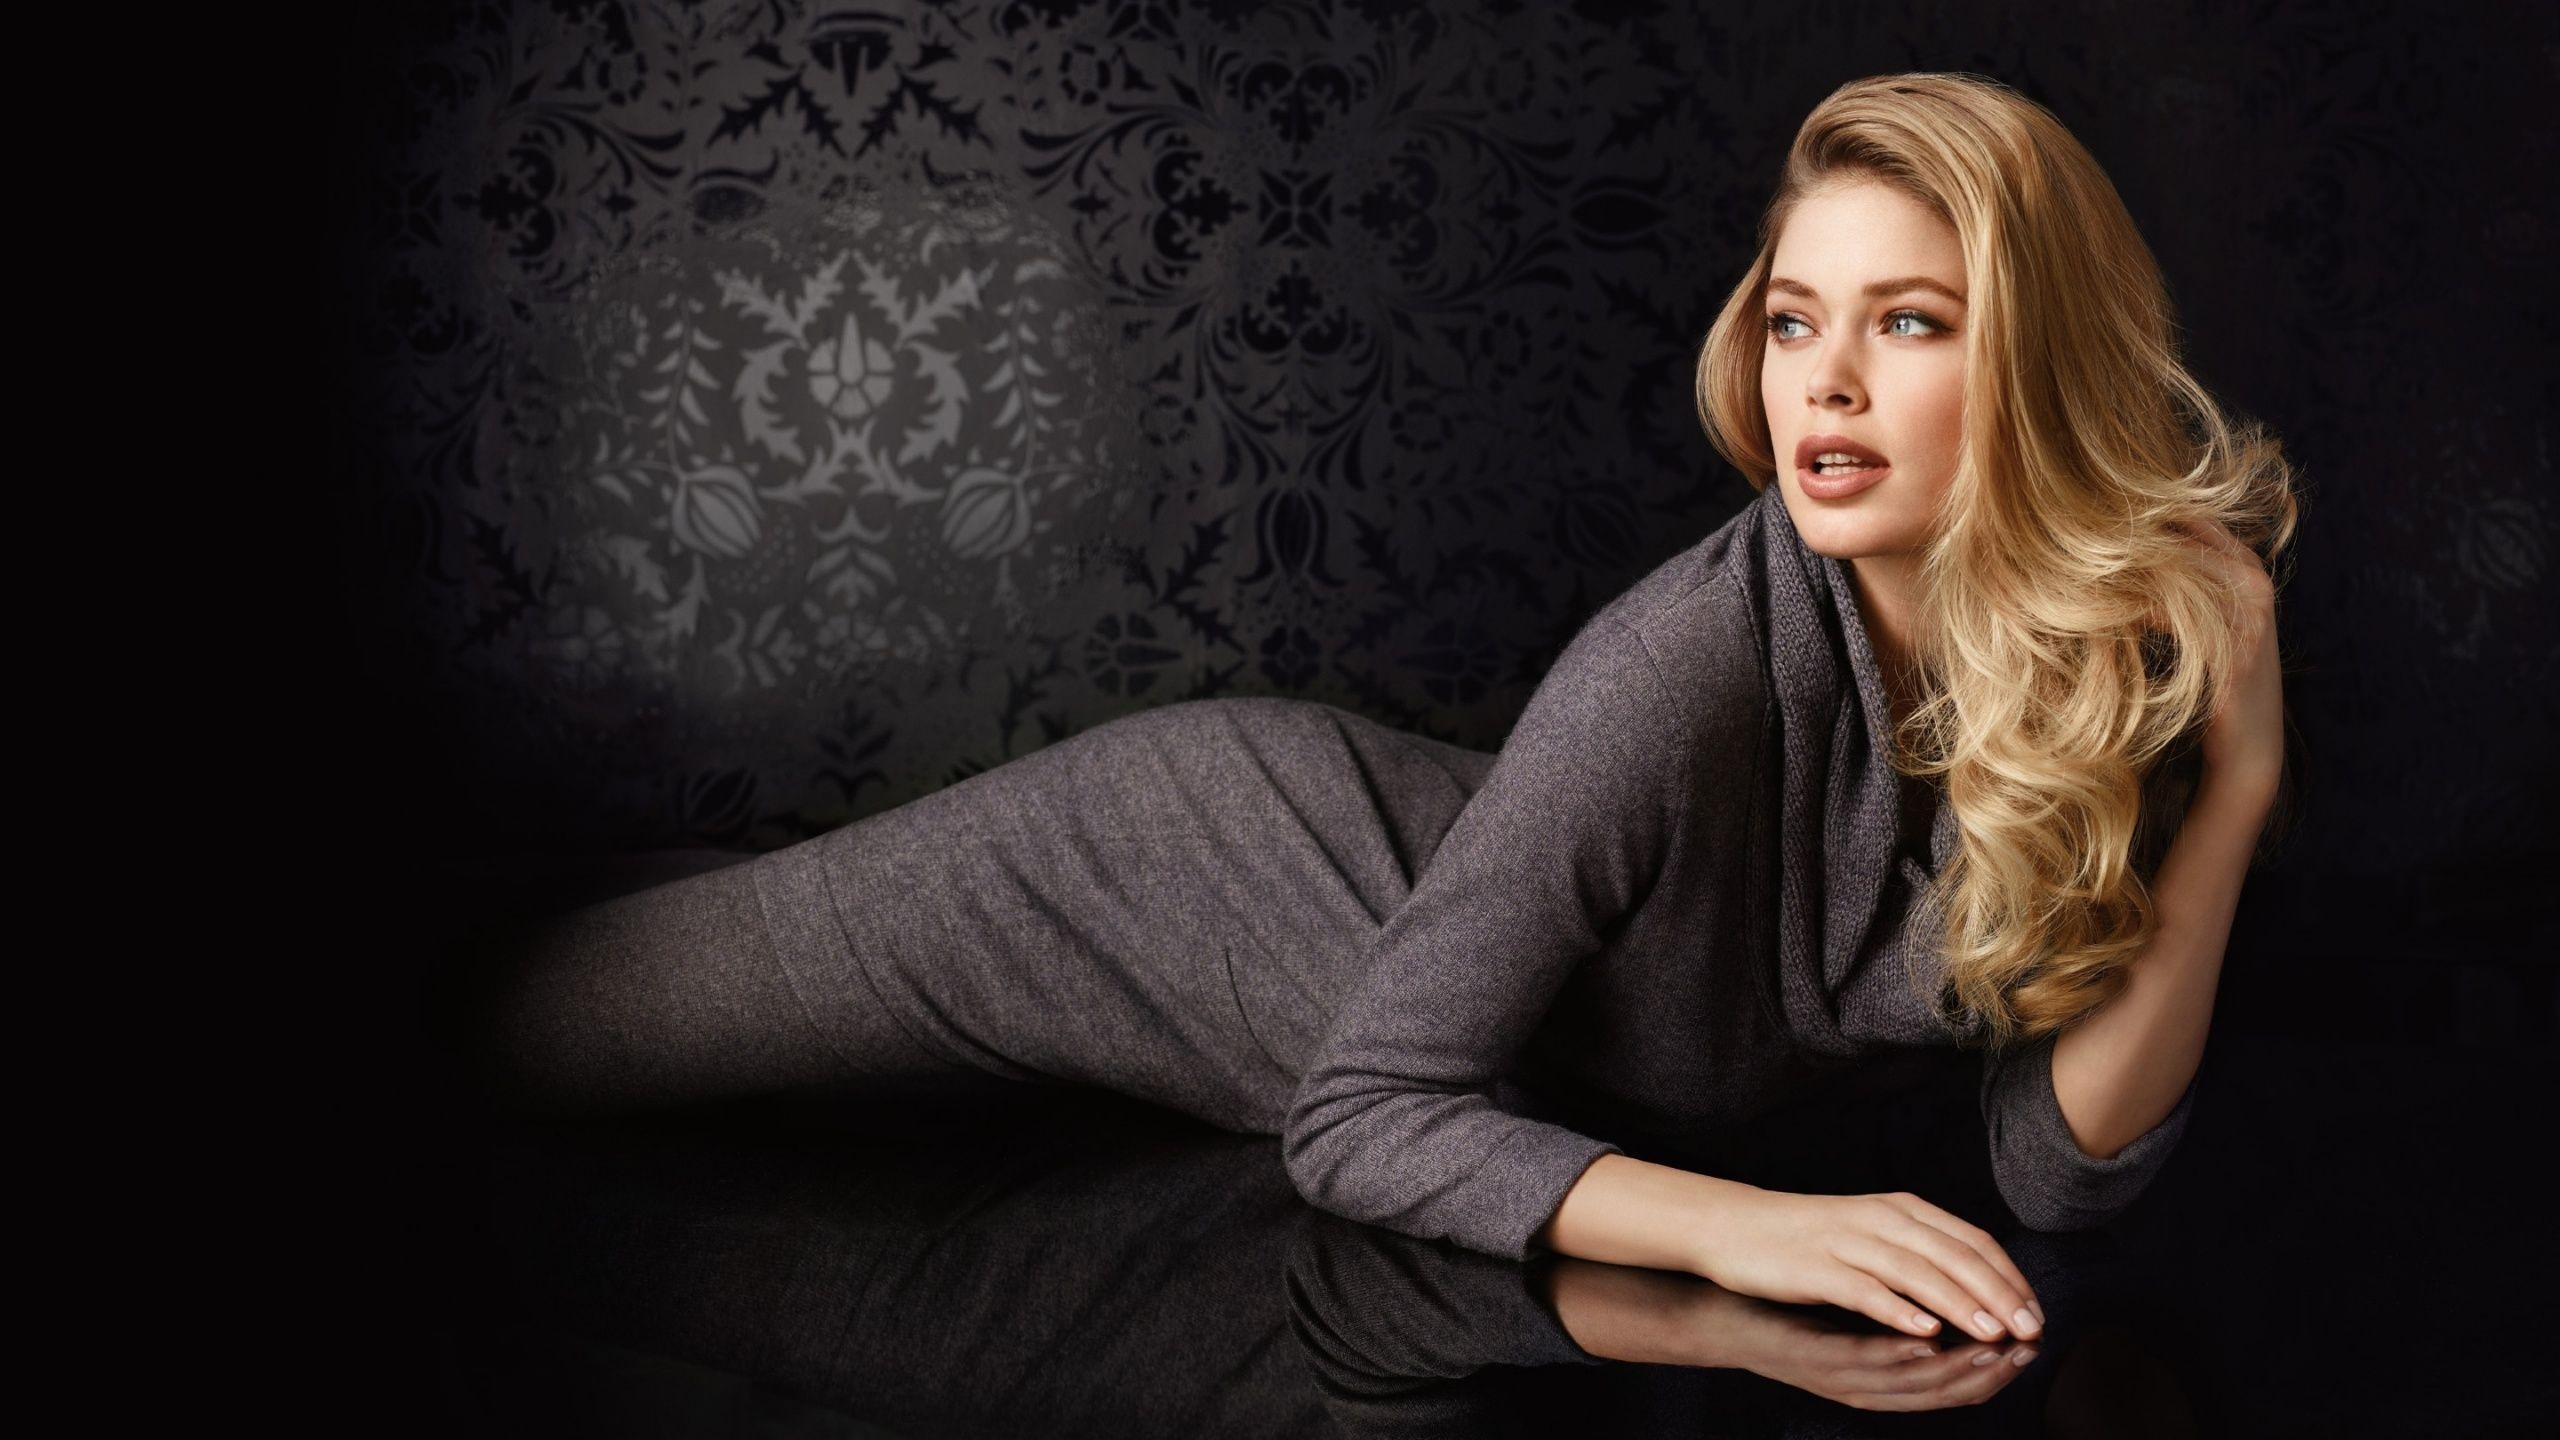 Doutzen Kroes Desktop HD Wallpaper in Widescreen & Facts